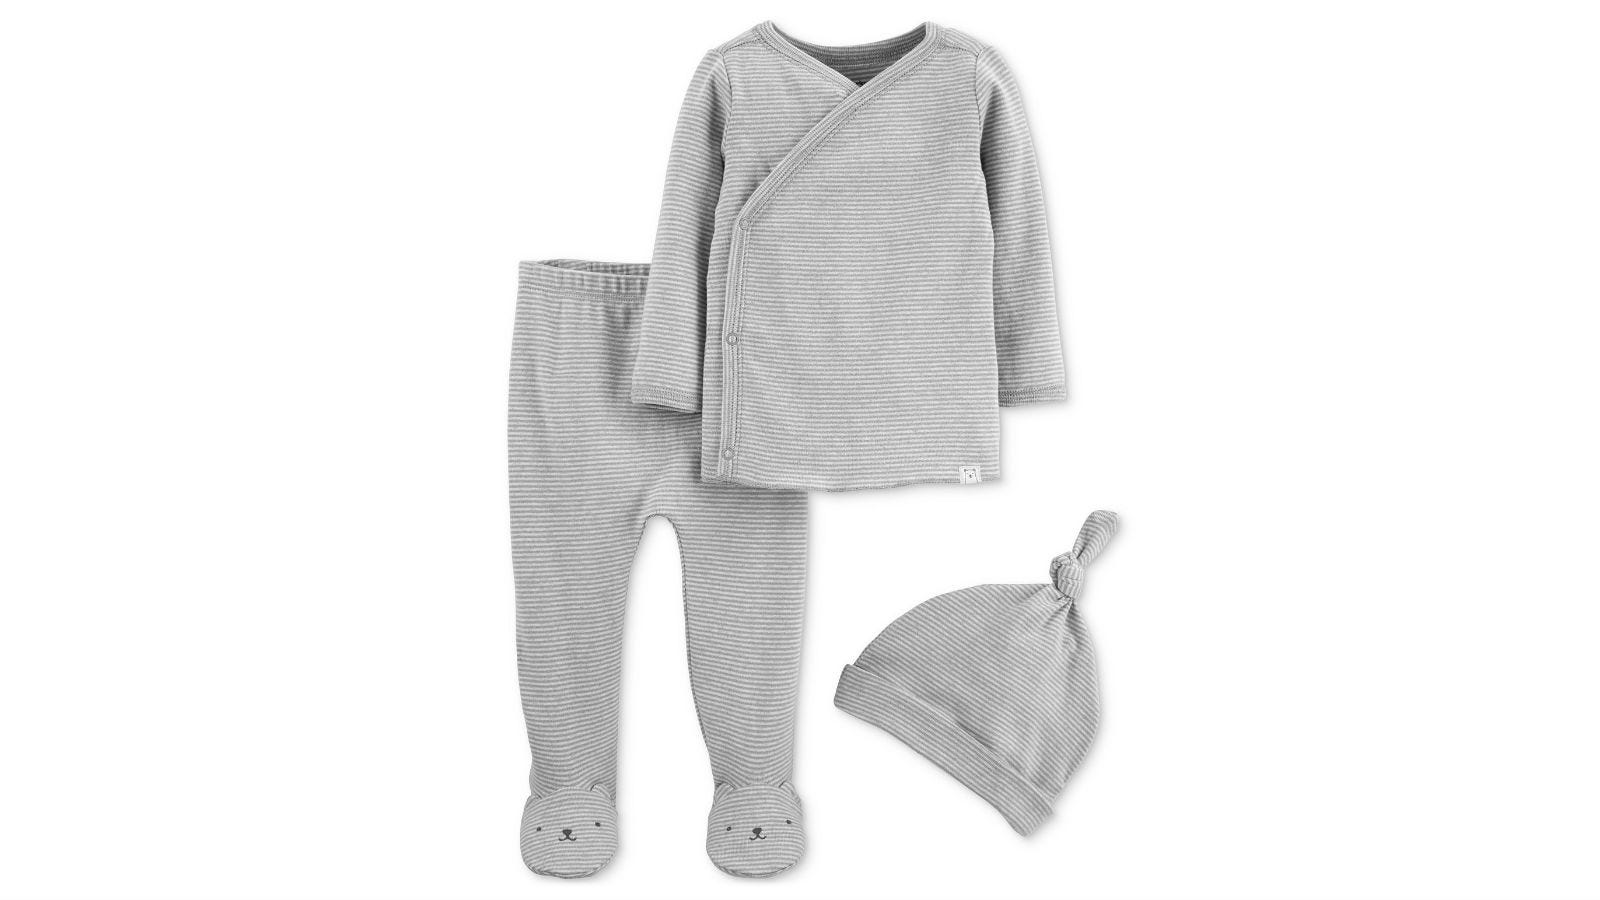 Carter's Baby Boy and Girls 3 Piece Set